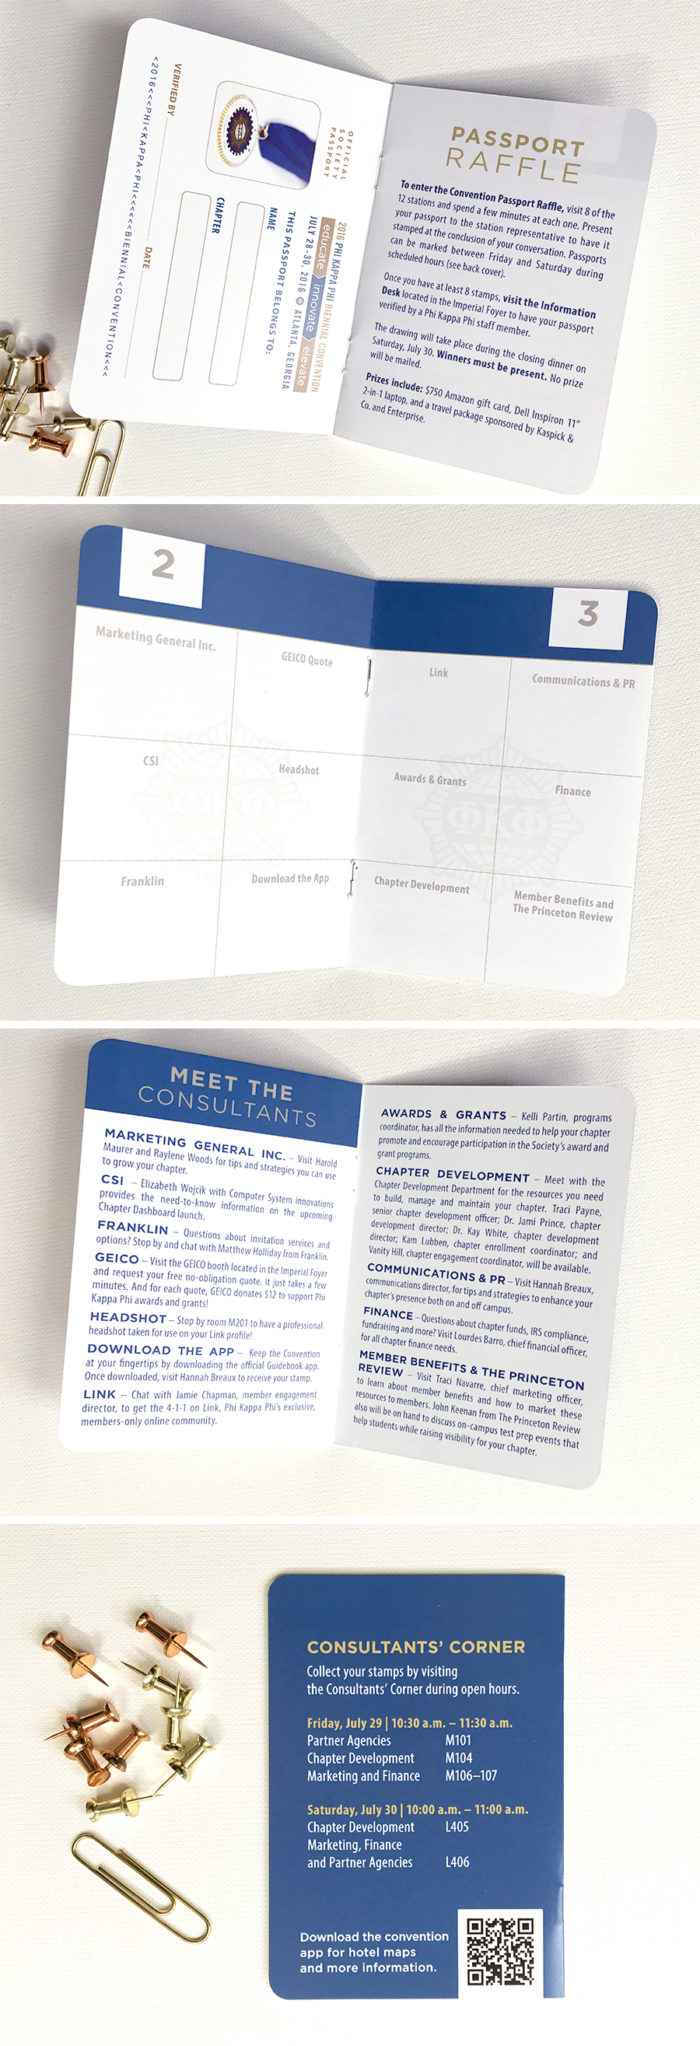 passport program book for honor s society event custom paper works